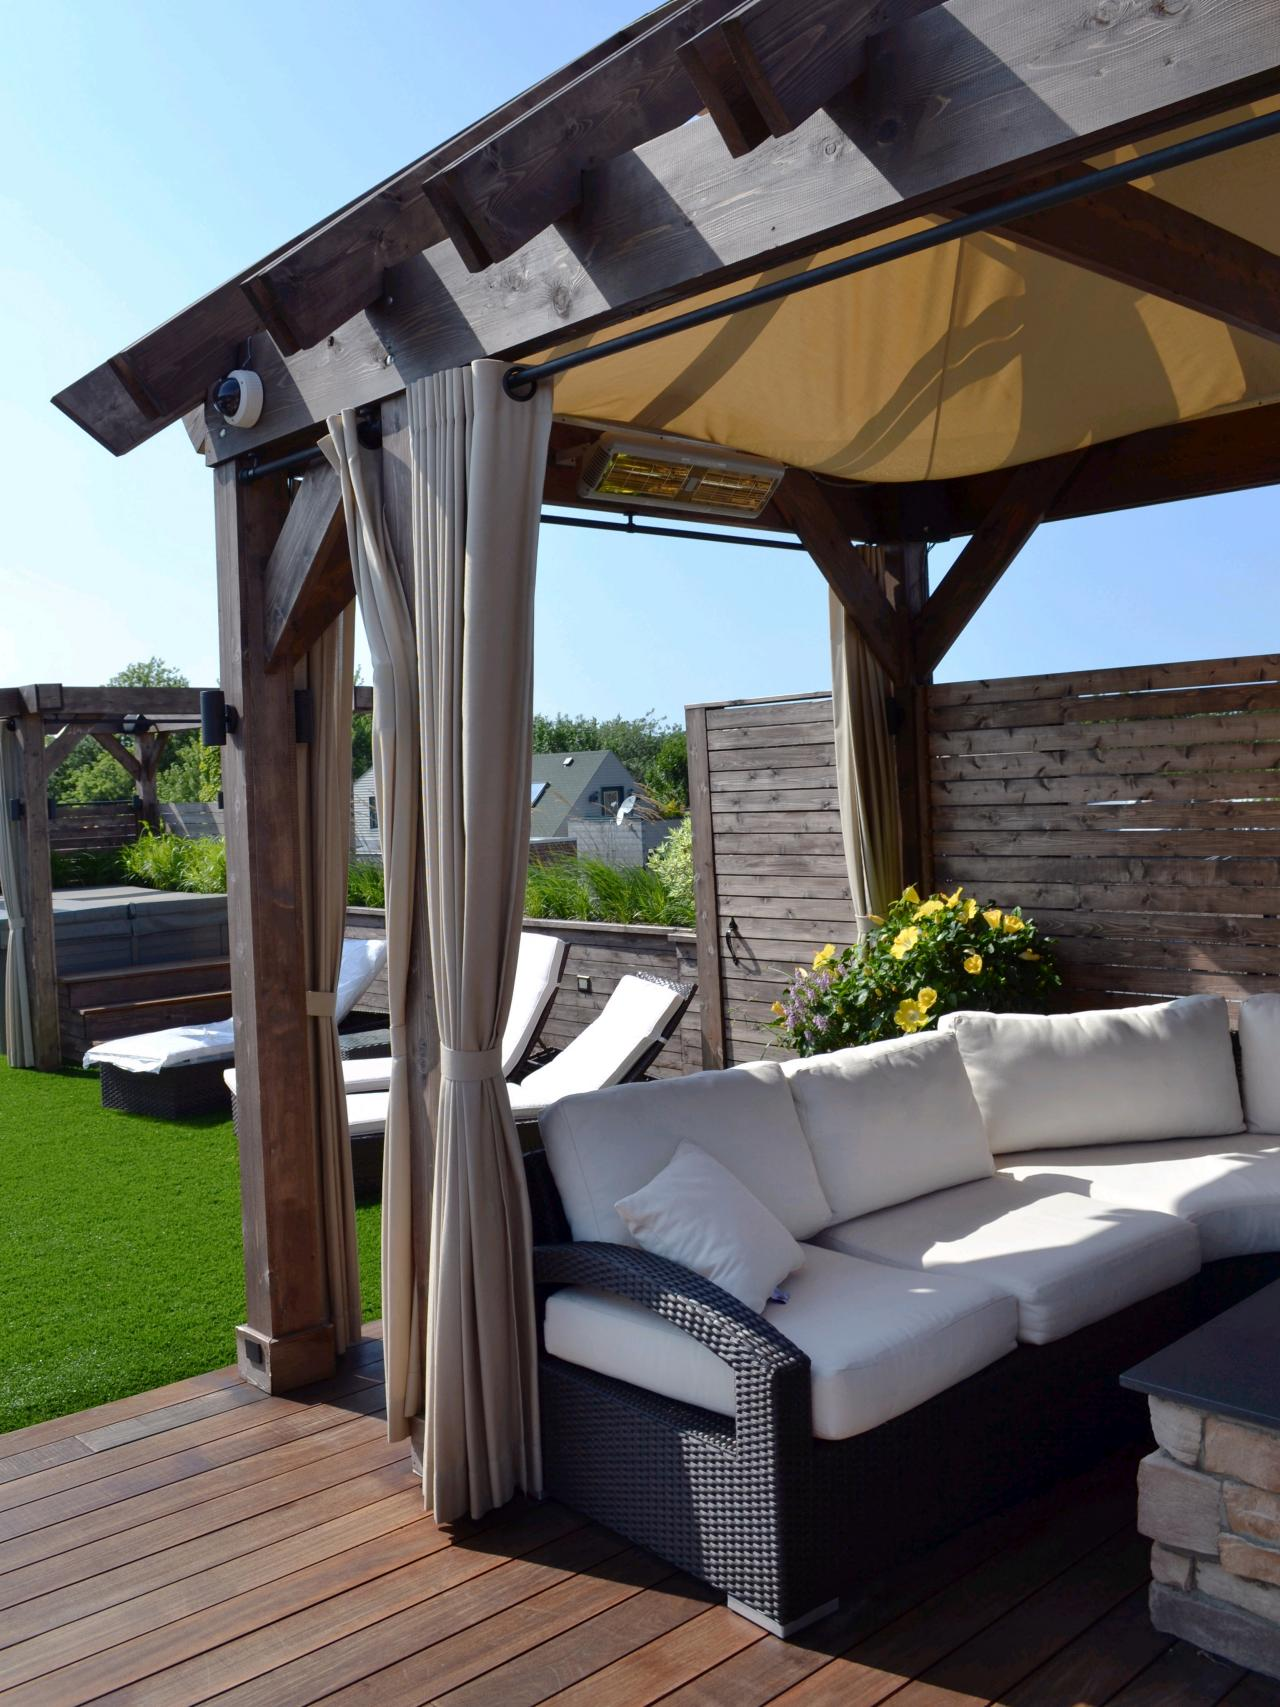 Patio Gazebos & Patio Gazebos | HGTV